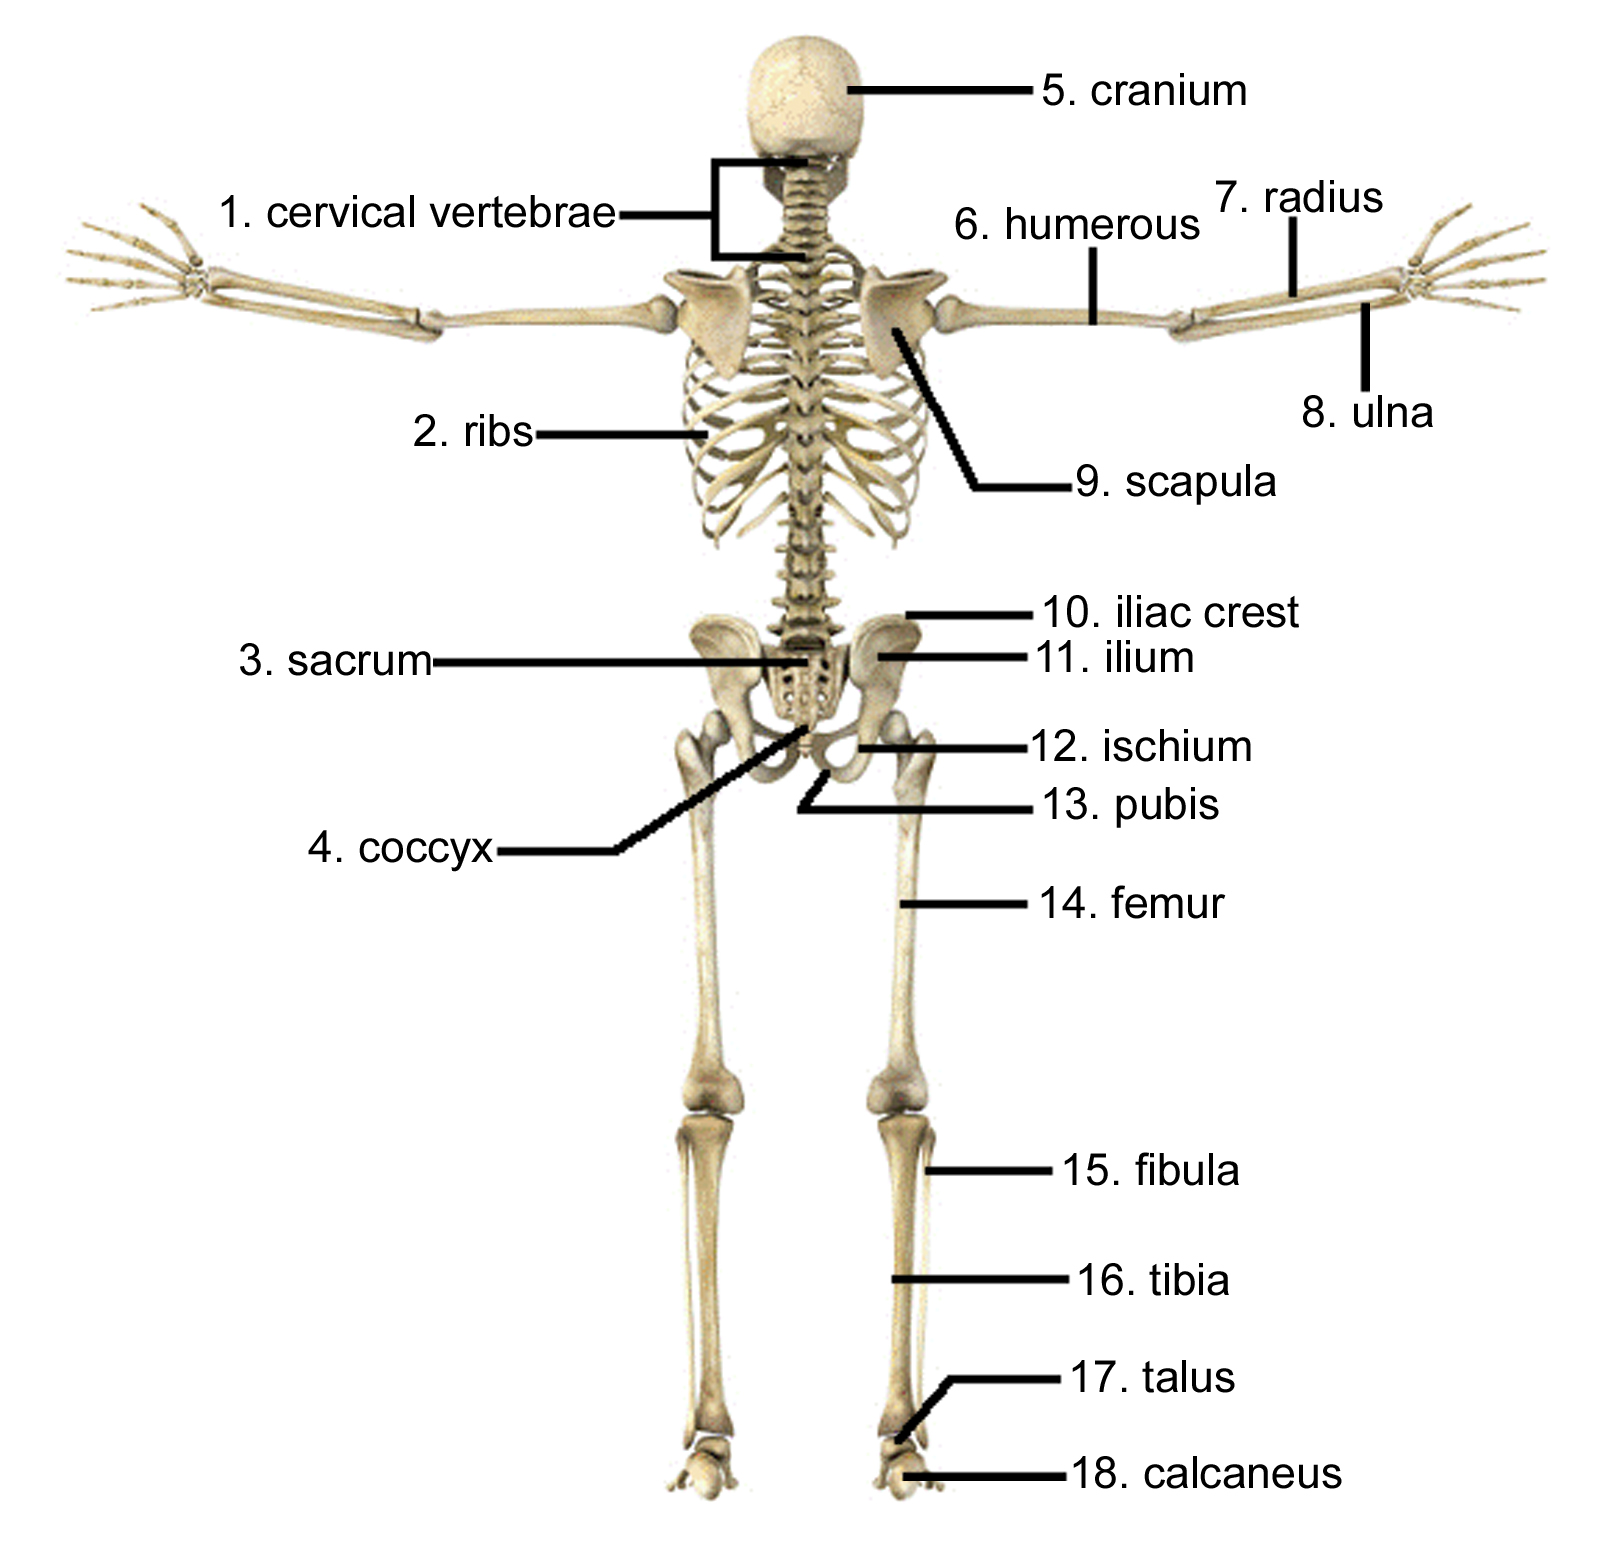 How Do Bones Help Regulate Mineral Levels In The Body